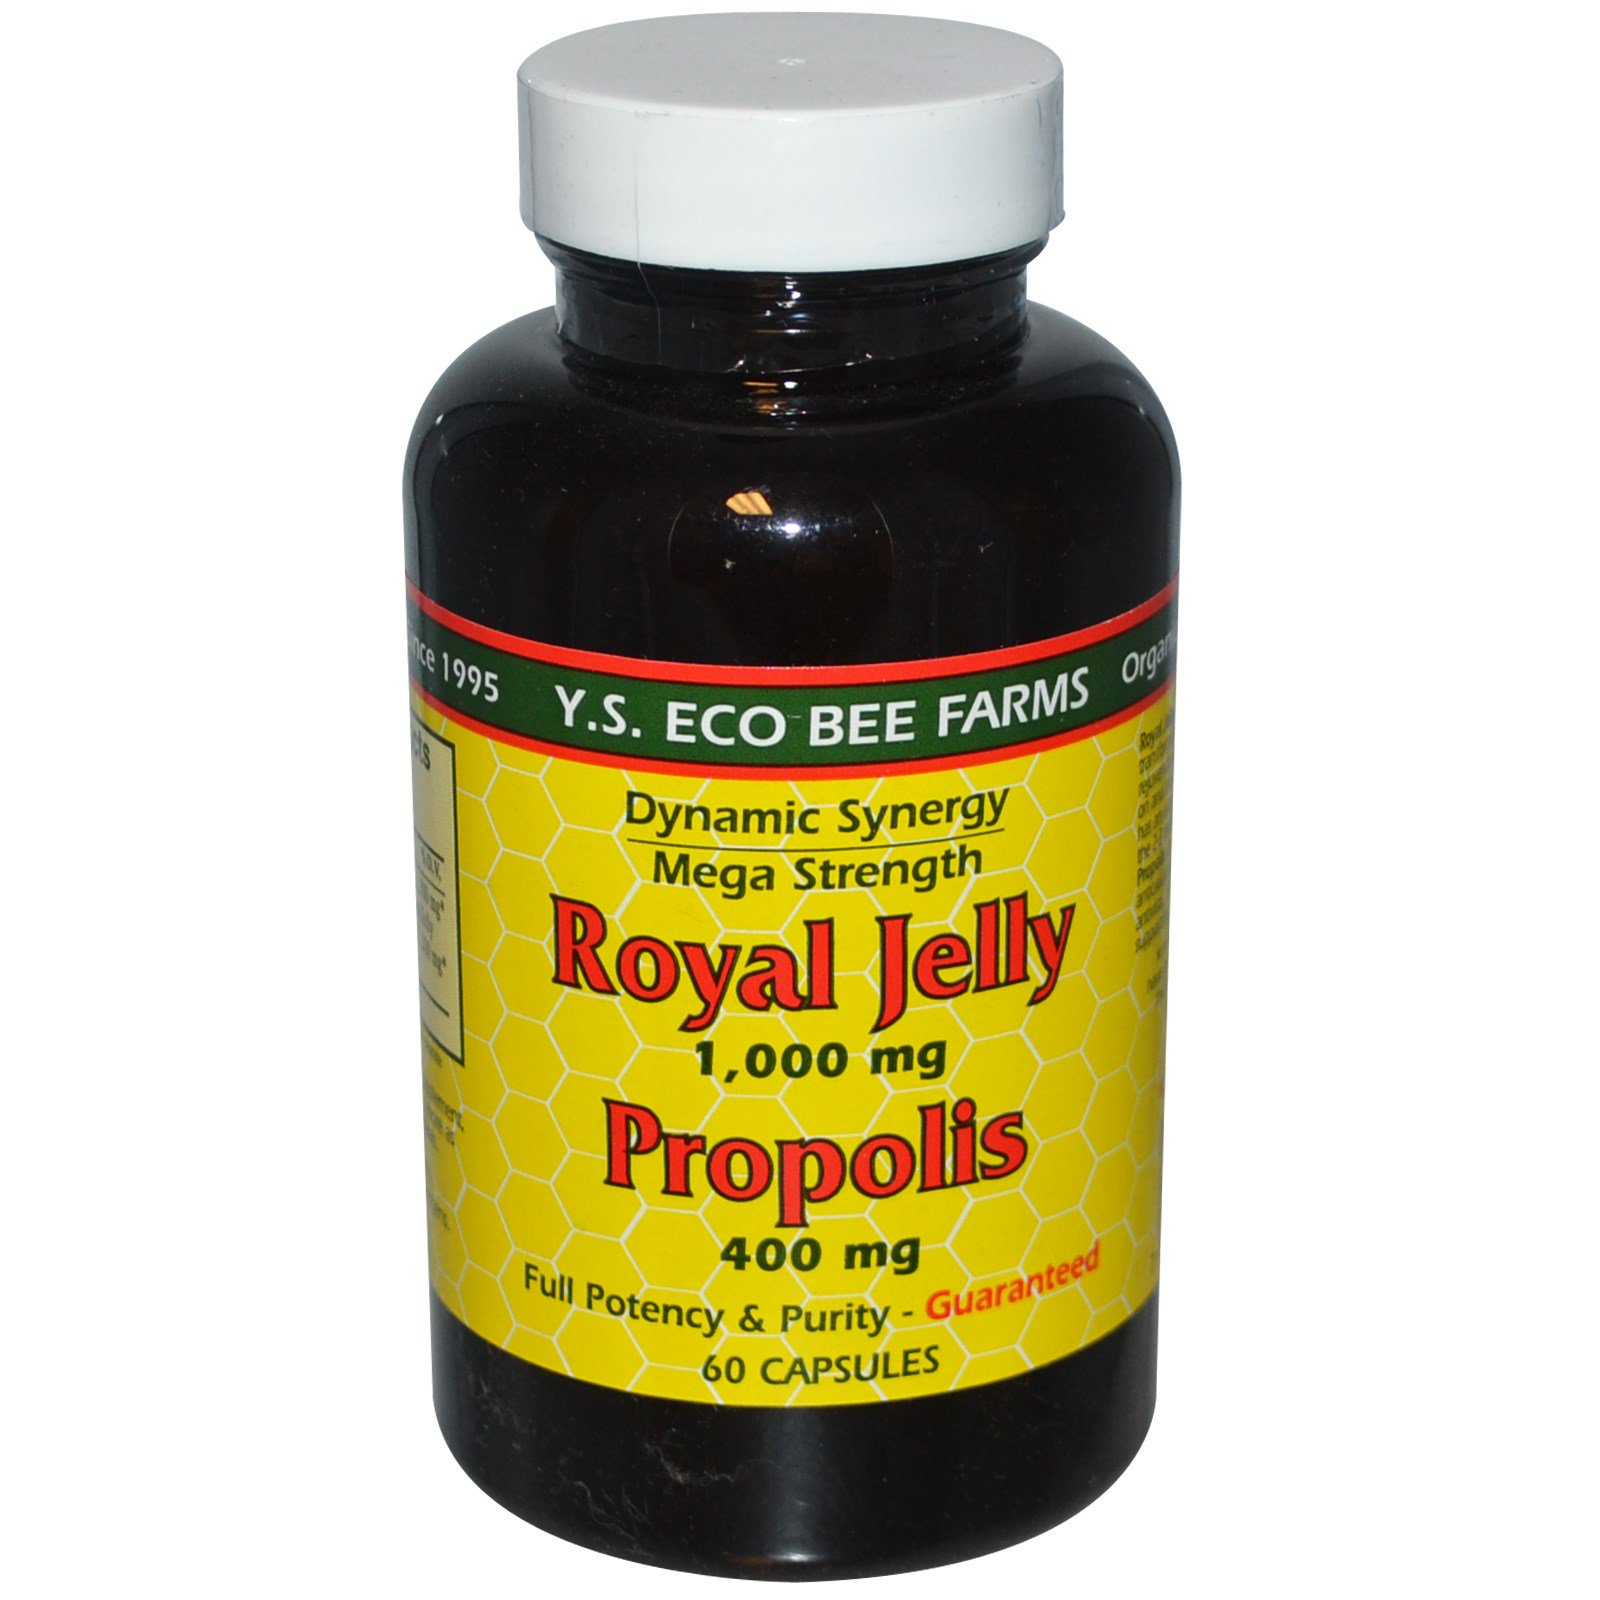 Where can i find royal jelly